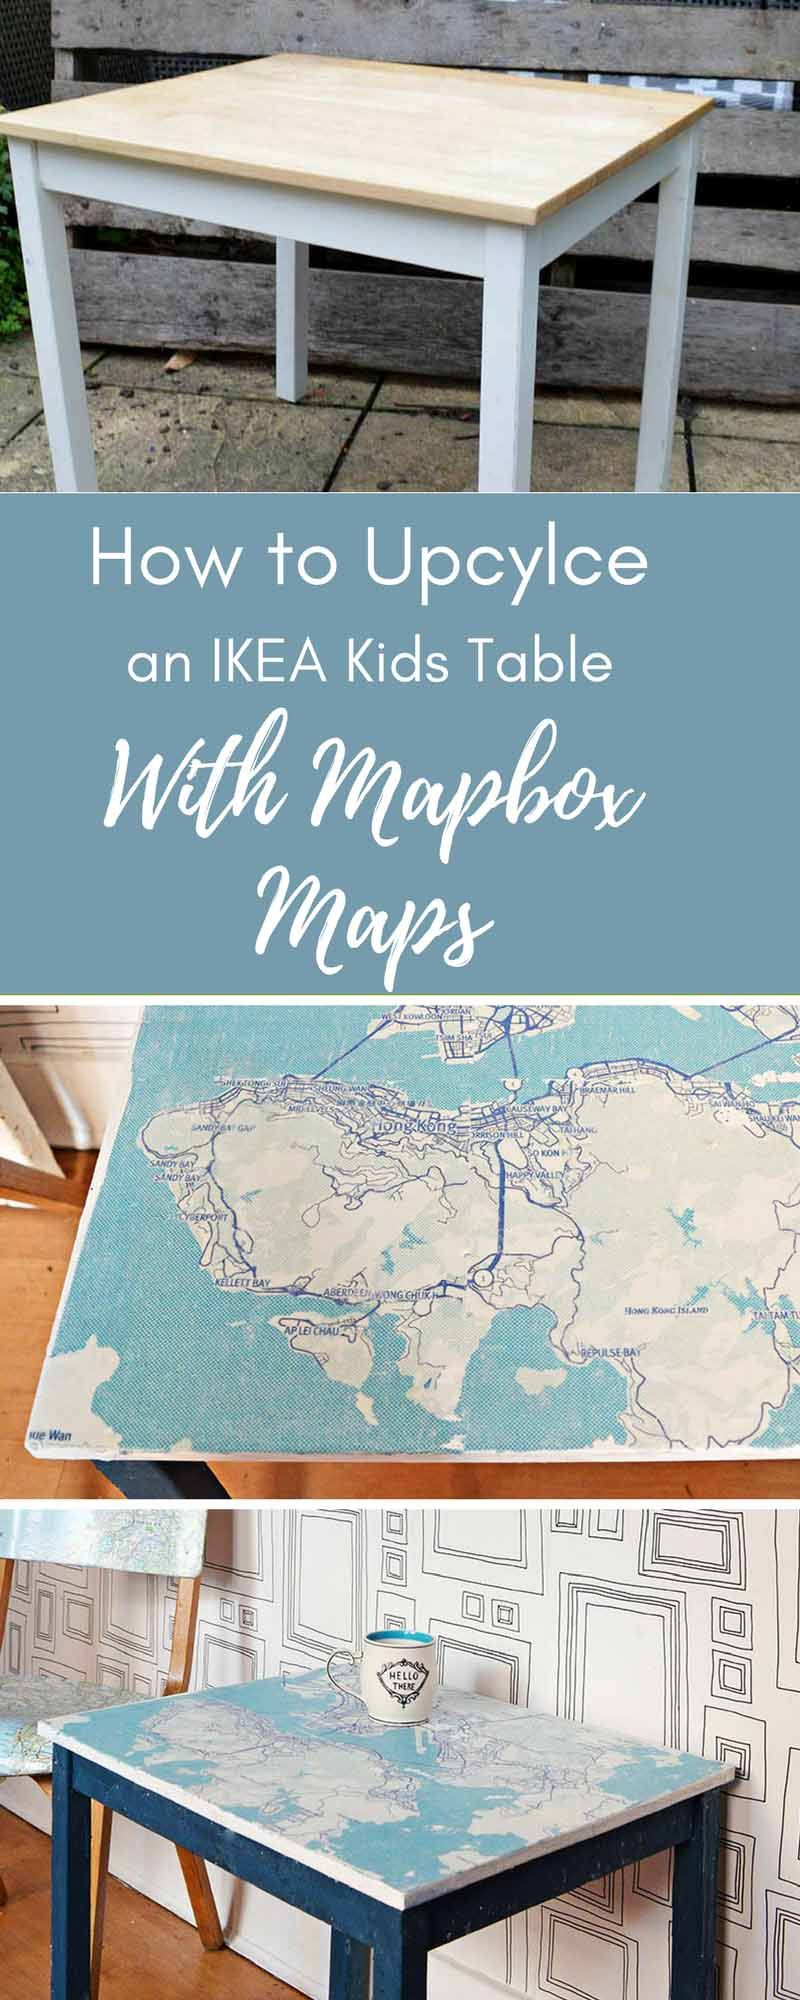 How to use mapbox for an amazing ikea kids table hack ikea kids did you know you can use mapbox to print maps of anywhere in the world in any style use them to print maps of your favourite city and then transfer the gumiabroncs Choice Image